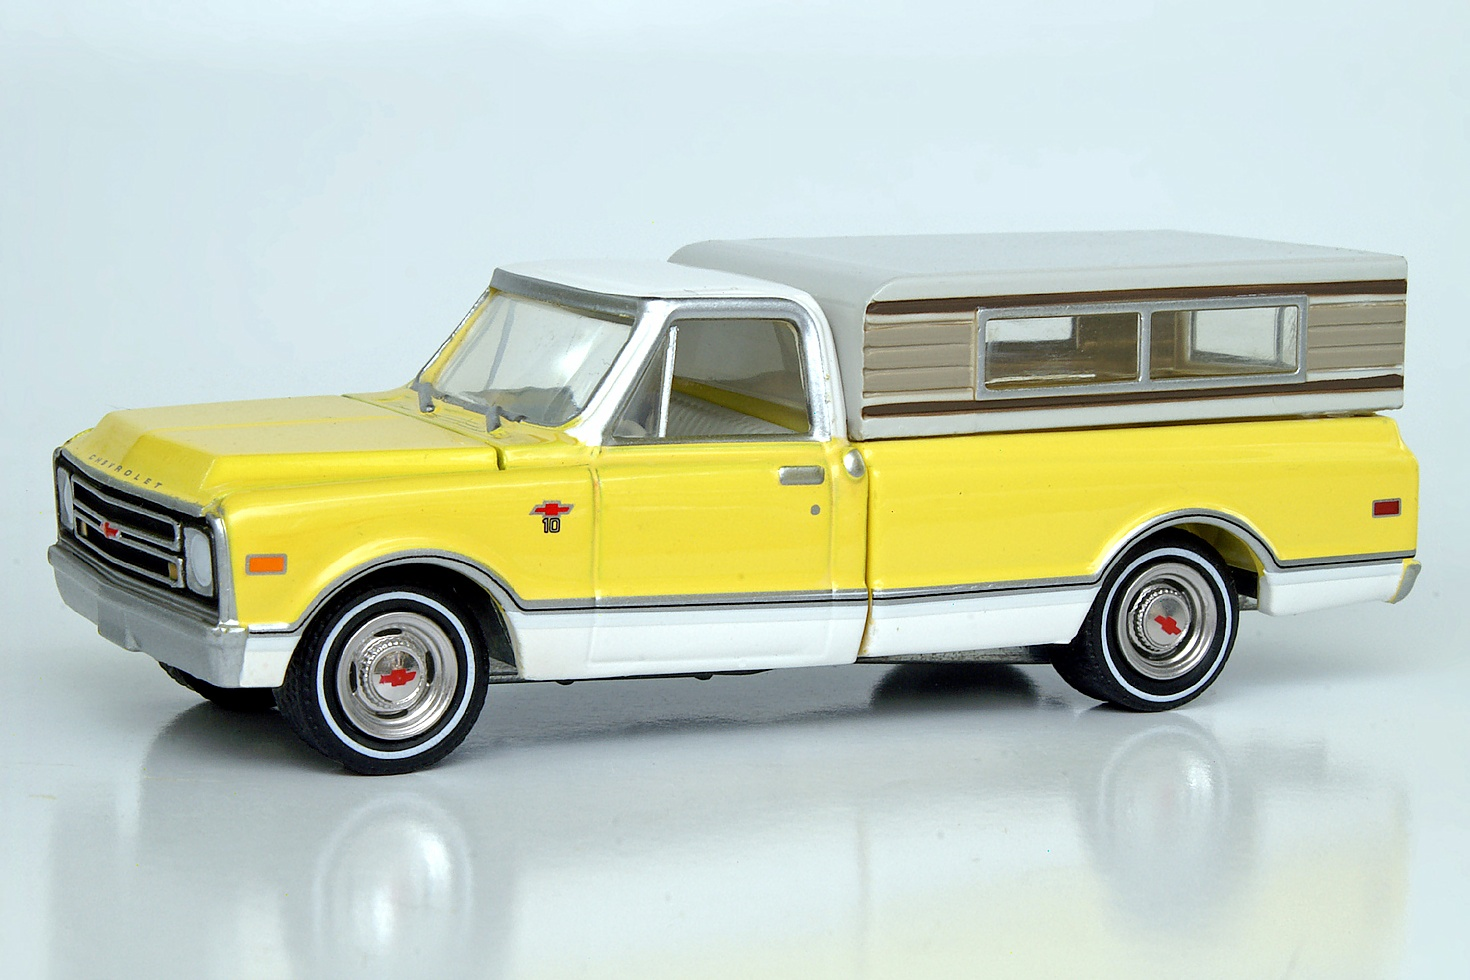 All Chevy chevy c10 wiki : Image - Greenlight 1968 Chevrolet C-10 - 2578df.jpg | Hot Wheels ...